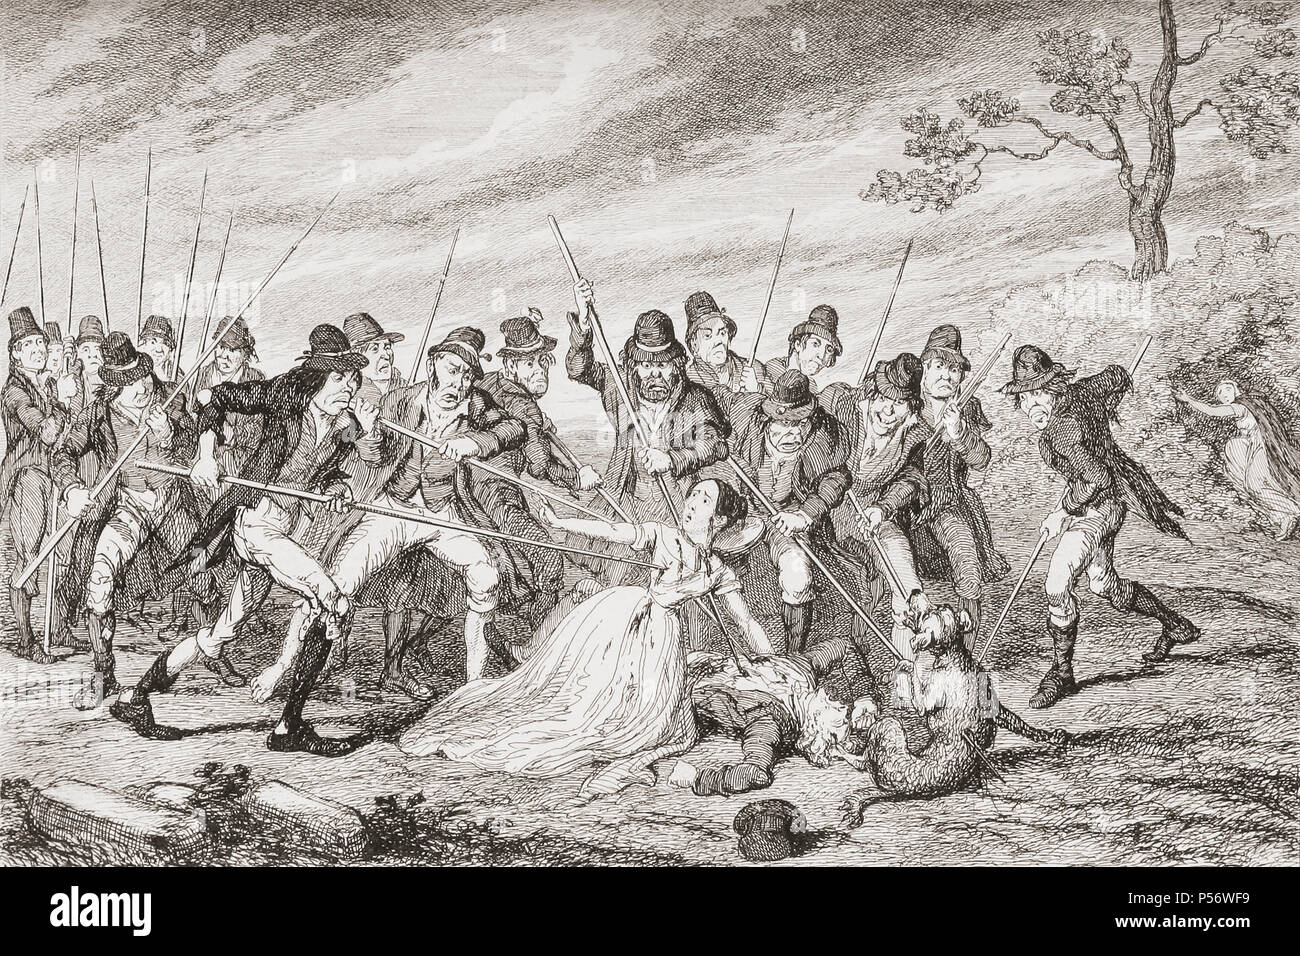 """""""The murder of George Crawford and his granddaughter"""".  An incident during the Irish Rebellion of 1798.  Illustration by George Cruikshank. From History of the Irish Rebellion in 1798; with Memoirs of the Union, and Emmett's Insurrection in 1803 by W.H. Maxwell. Published in London 1854. - Stock Image"""